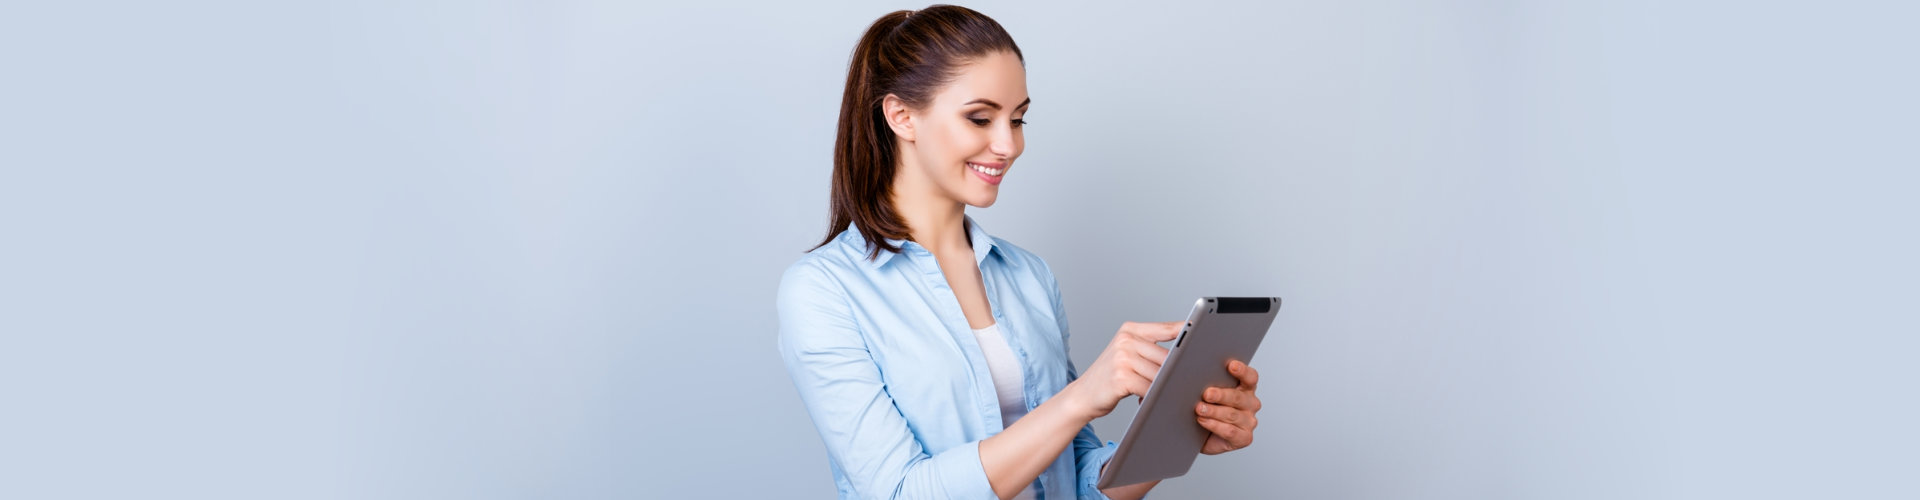 woman using tablet